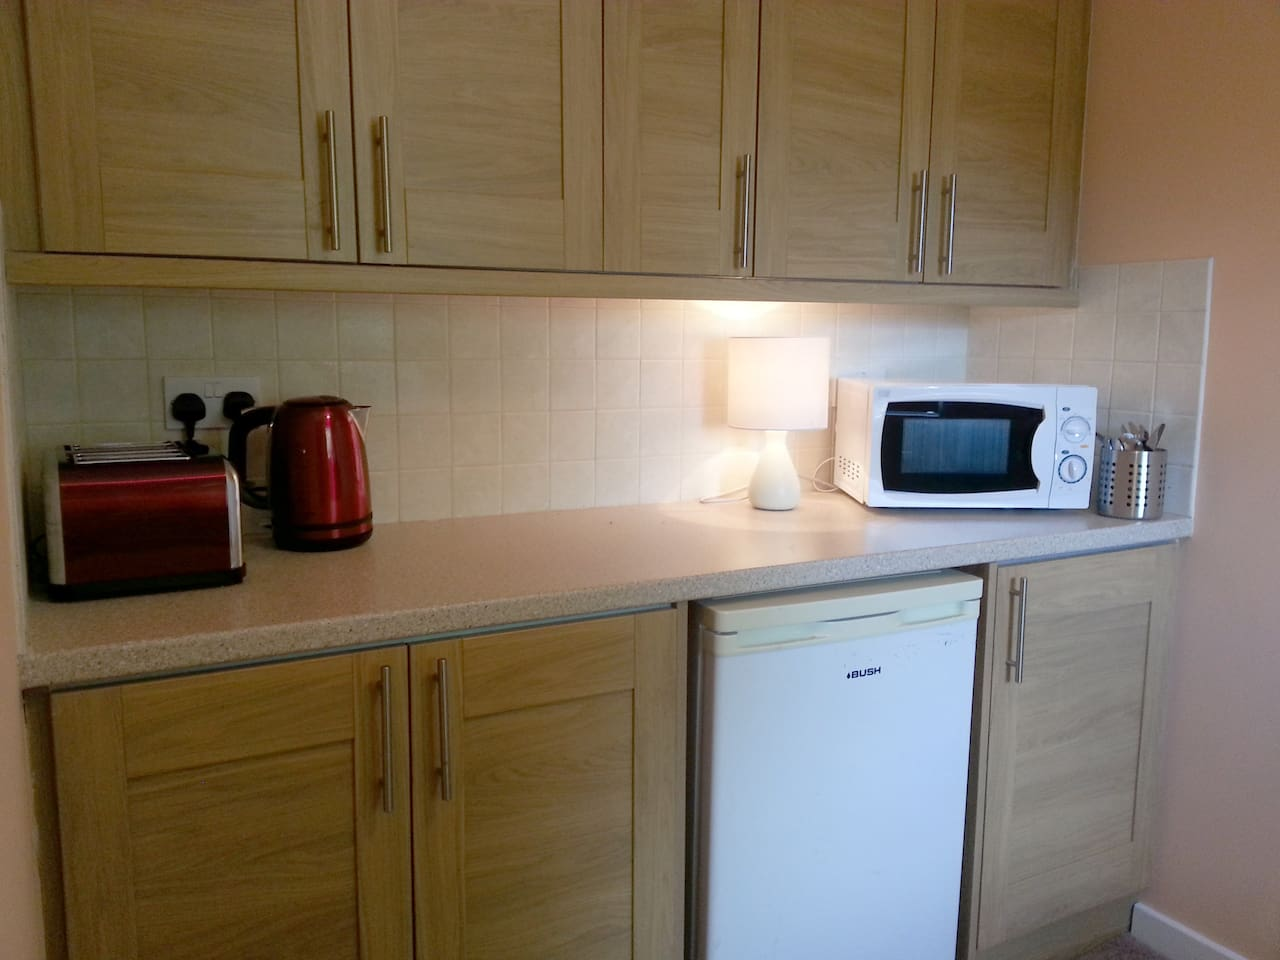 Kitchenette equipped with microwave, fridge, kettle and toaster